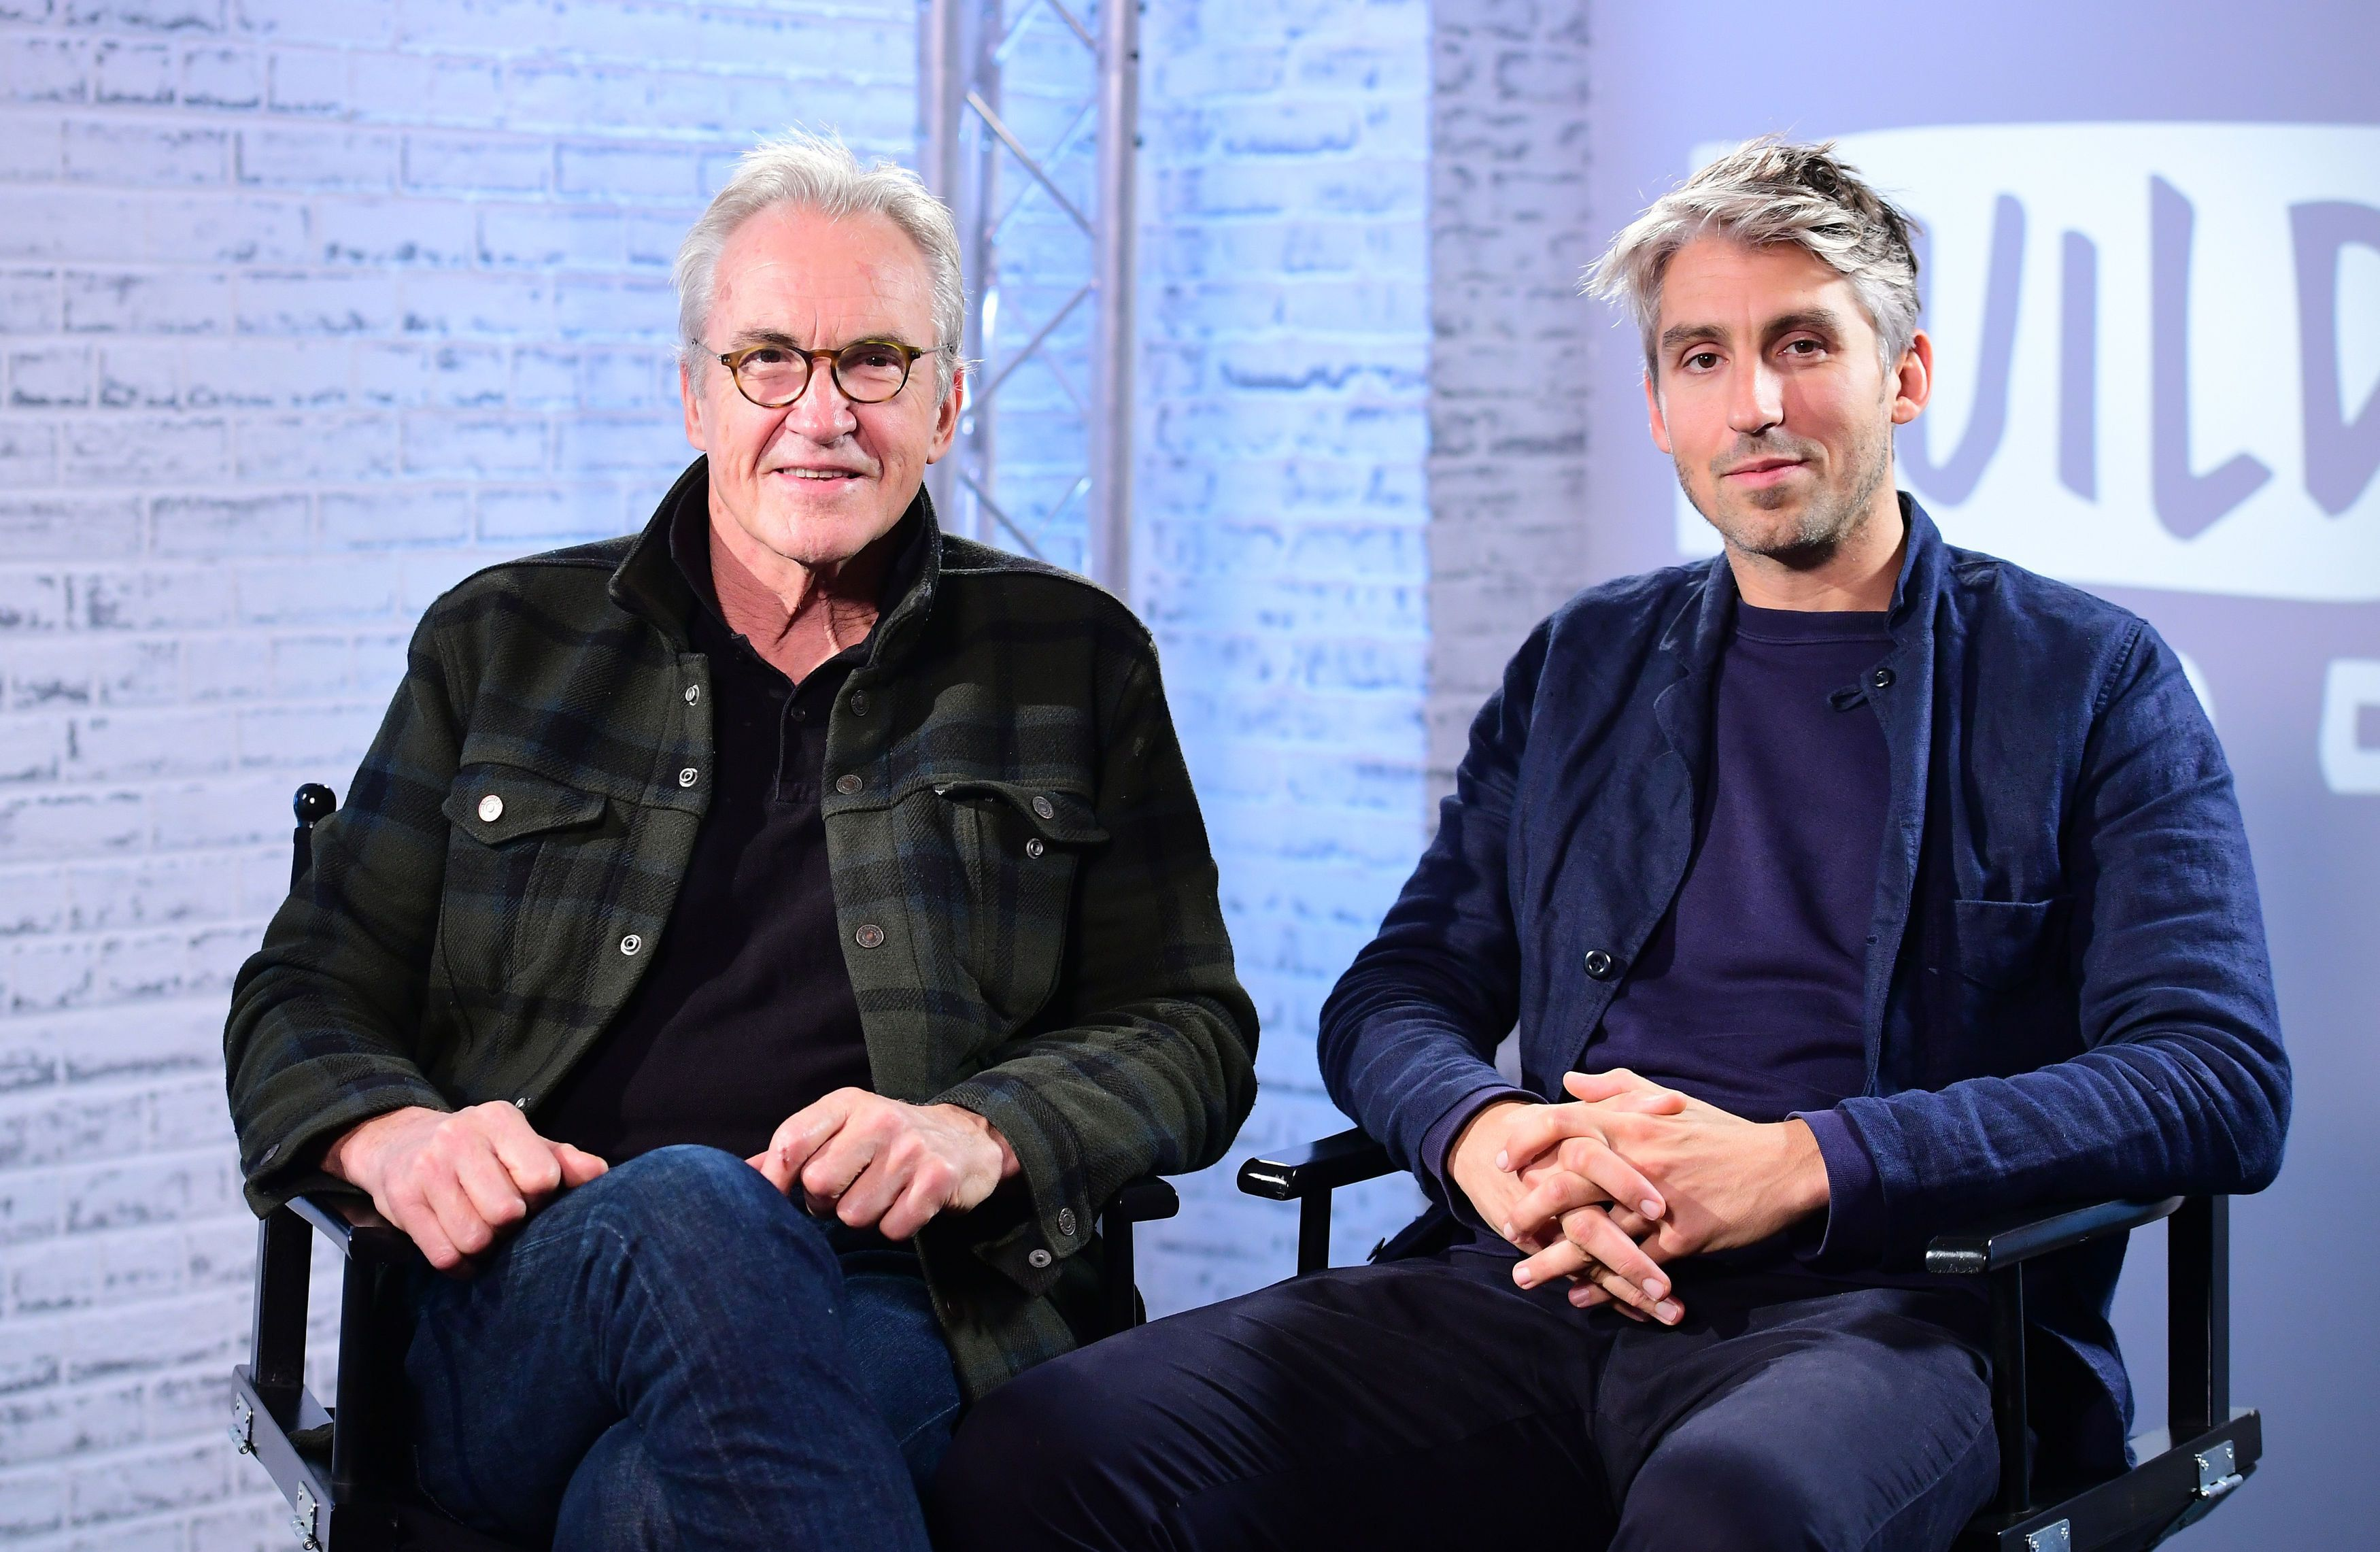 Larry and George Lamb made an appearance on